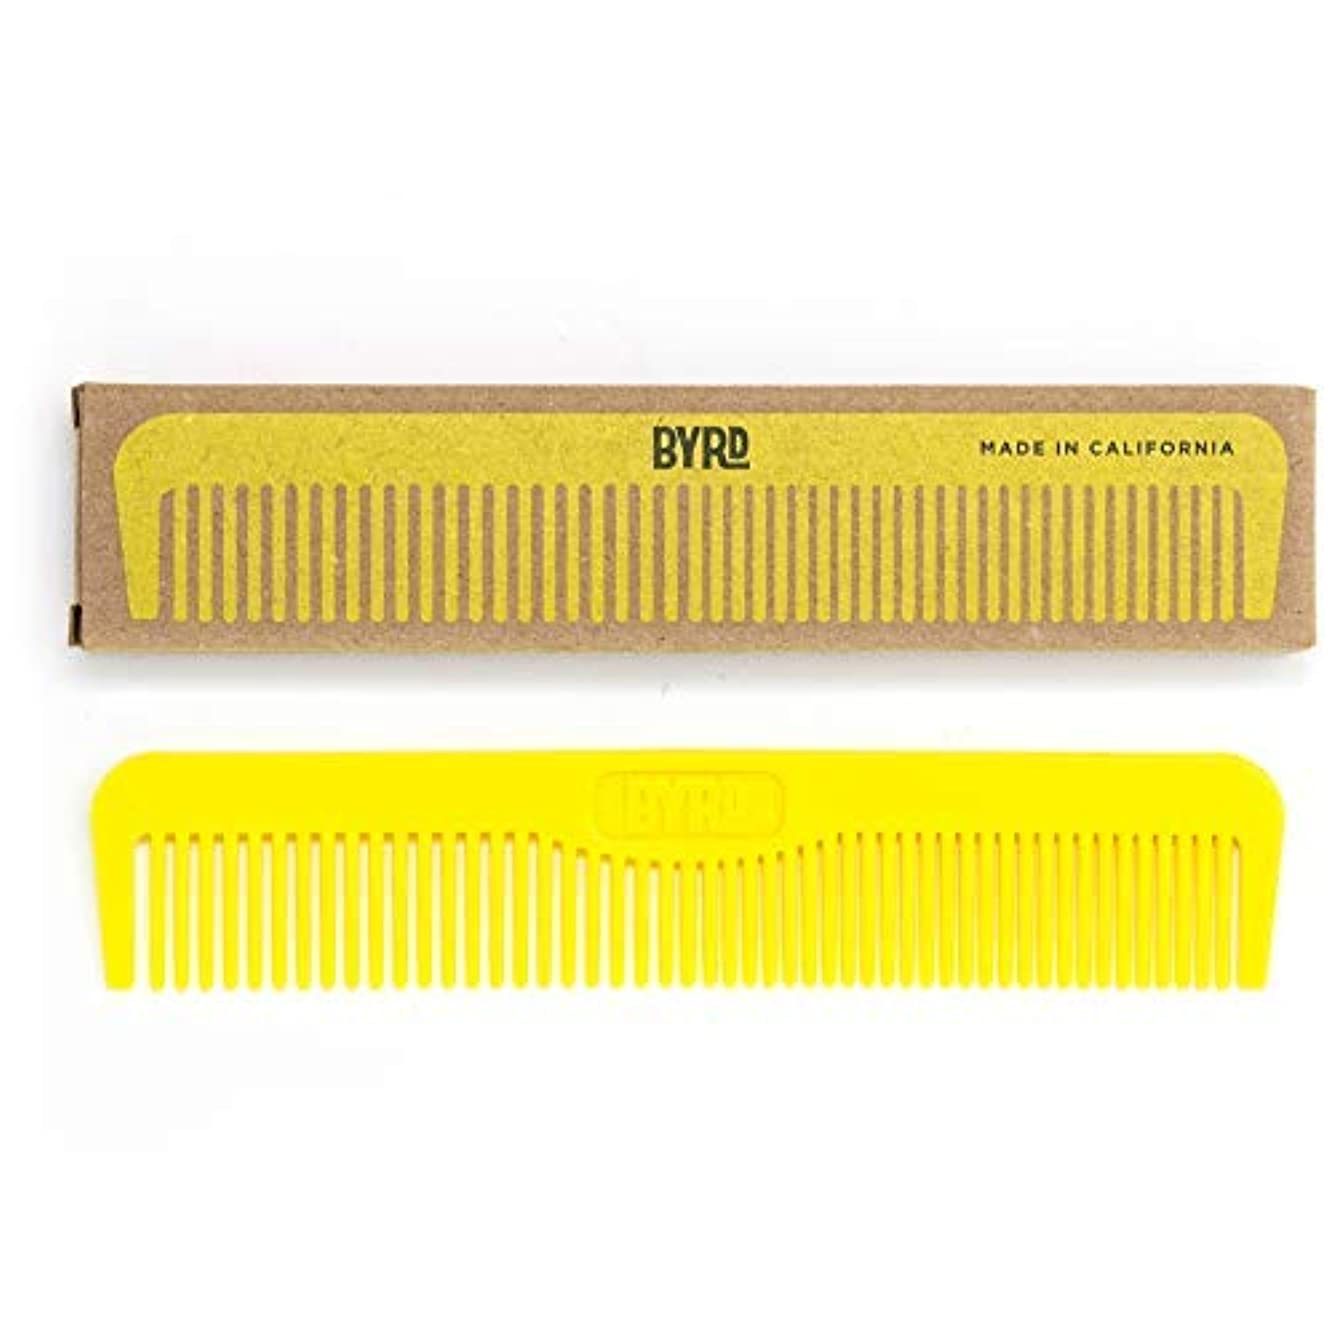 検出走る百年BYRD Pocket Comb - Durable, Flexible, Tangle Free, Styling Comb, For All Hair Types, Back Pocket Friendly [並行輸入品]